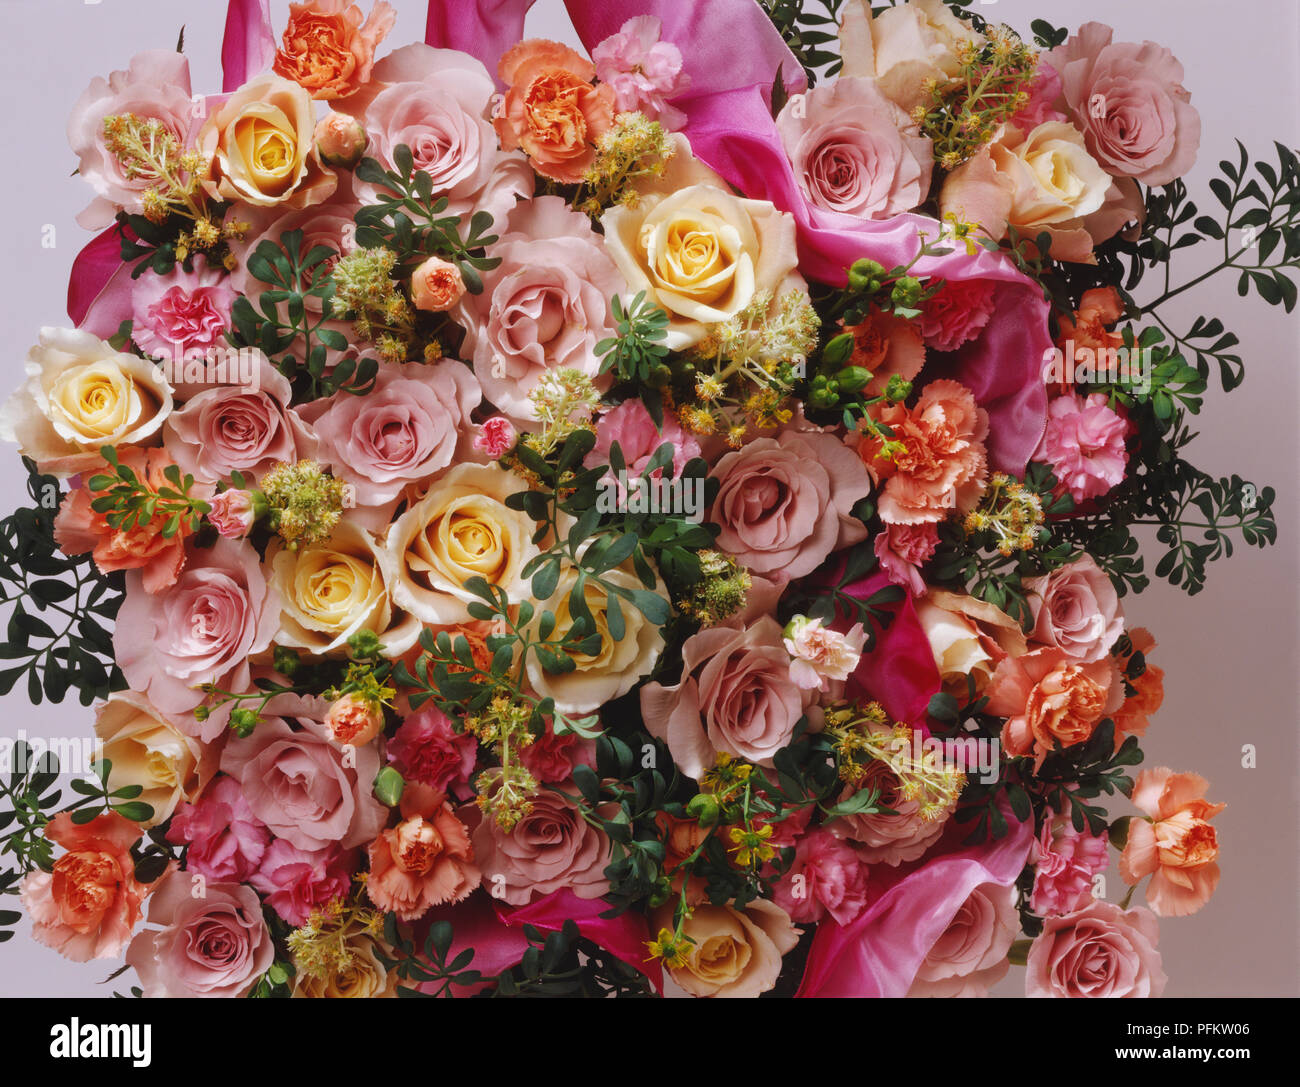 Overhead display of roses packed closely together varying in shades of pink with sprigs of green leaves. - Stock Image